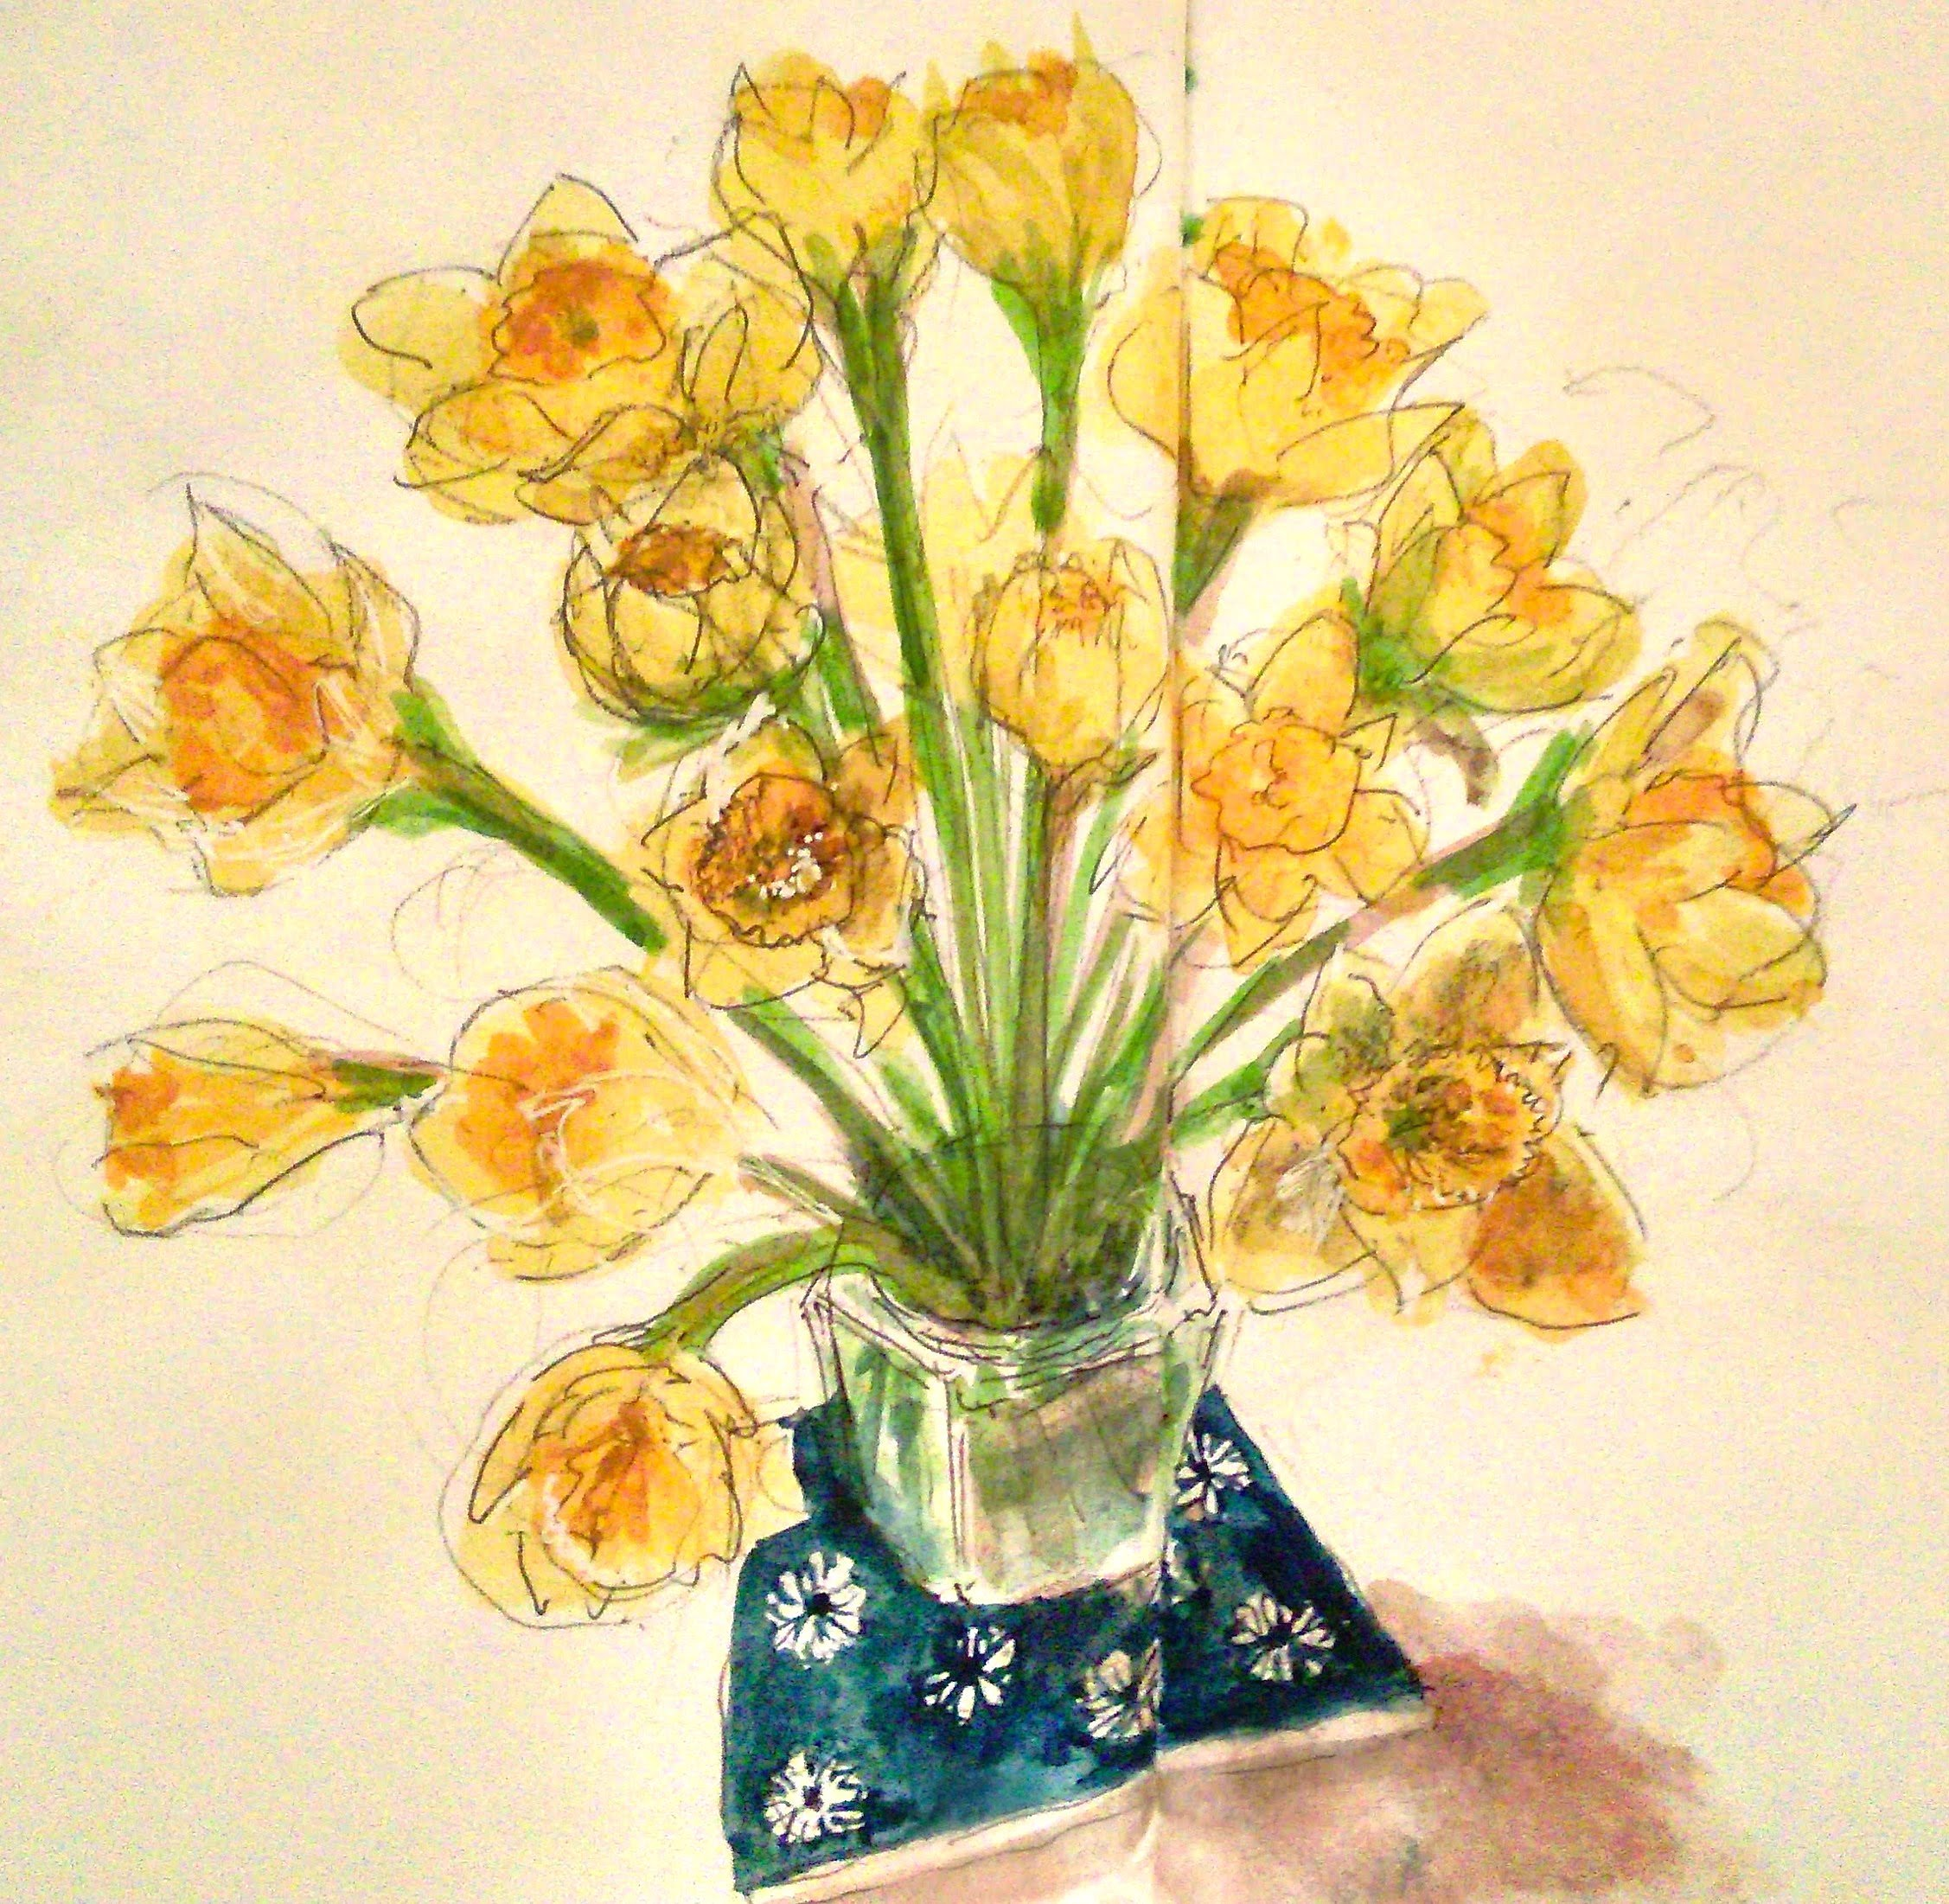 Home, News & Events. Zoom Daffodils